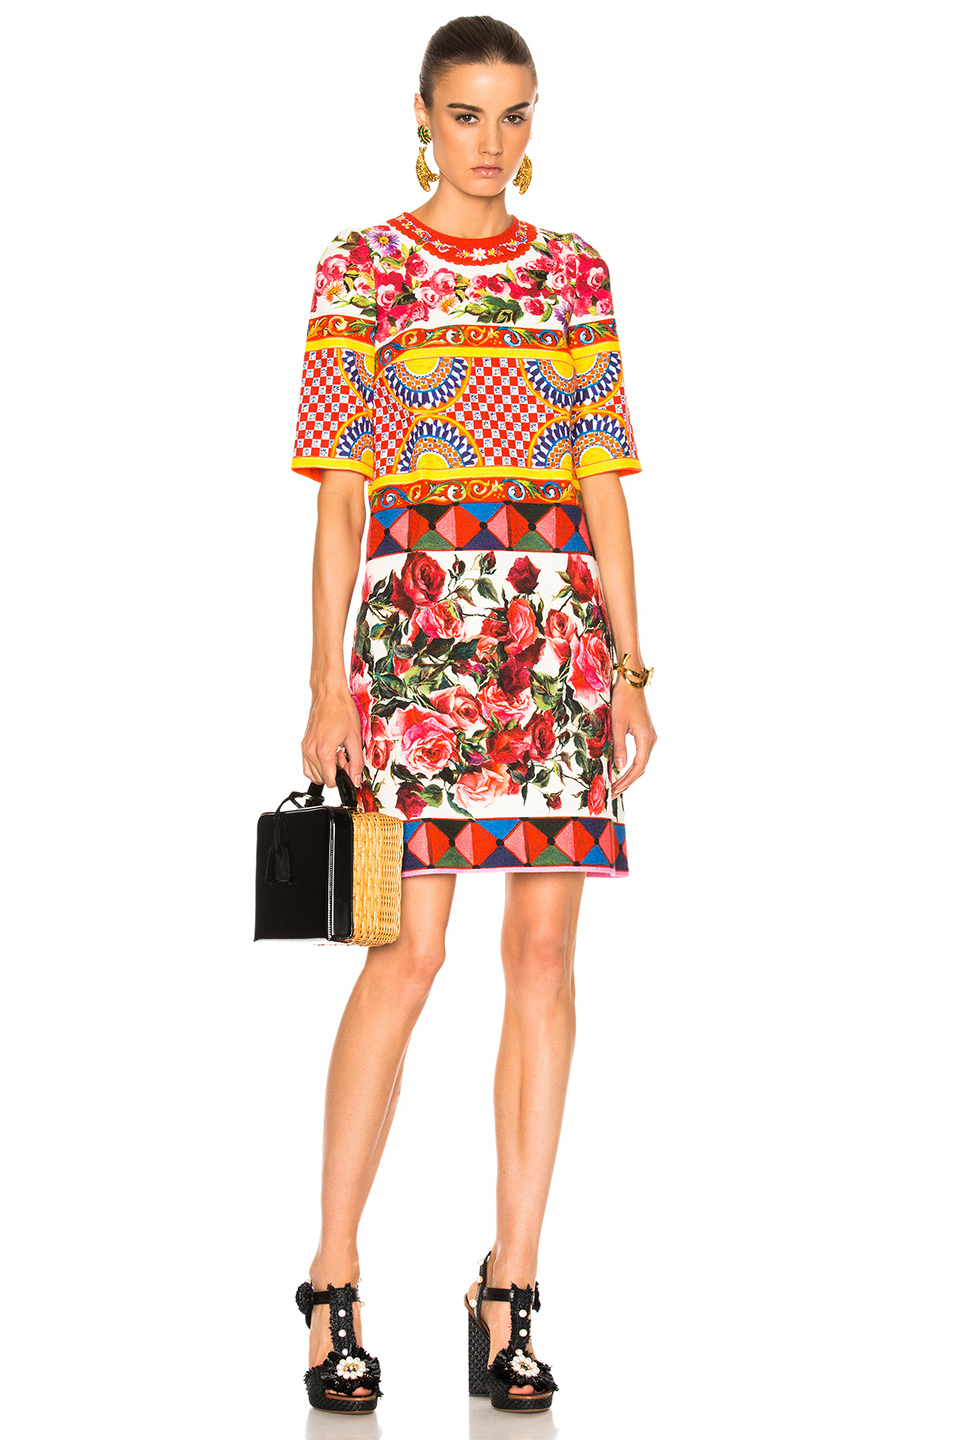 Dolce & Gabbana Printed Textured Cotton Dress in Abstract,Floral,Red